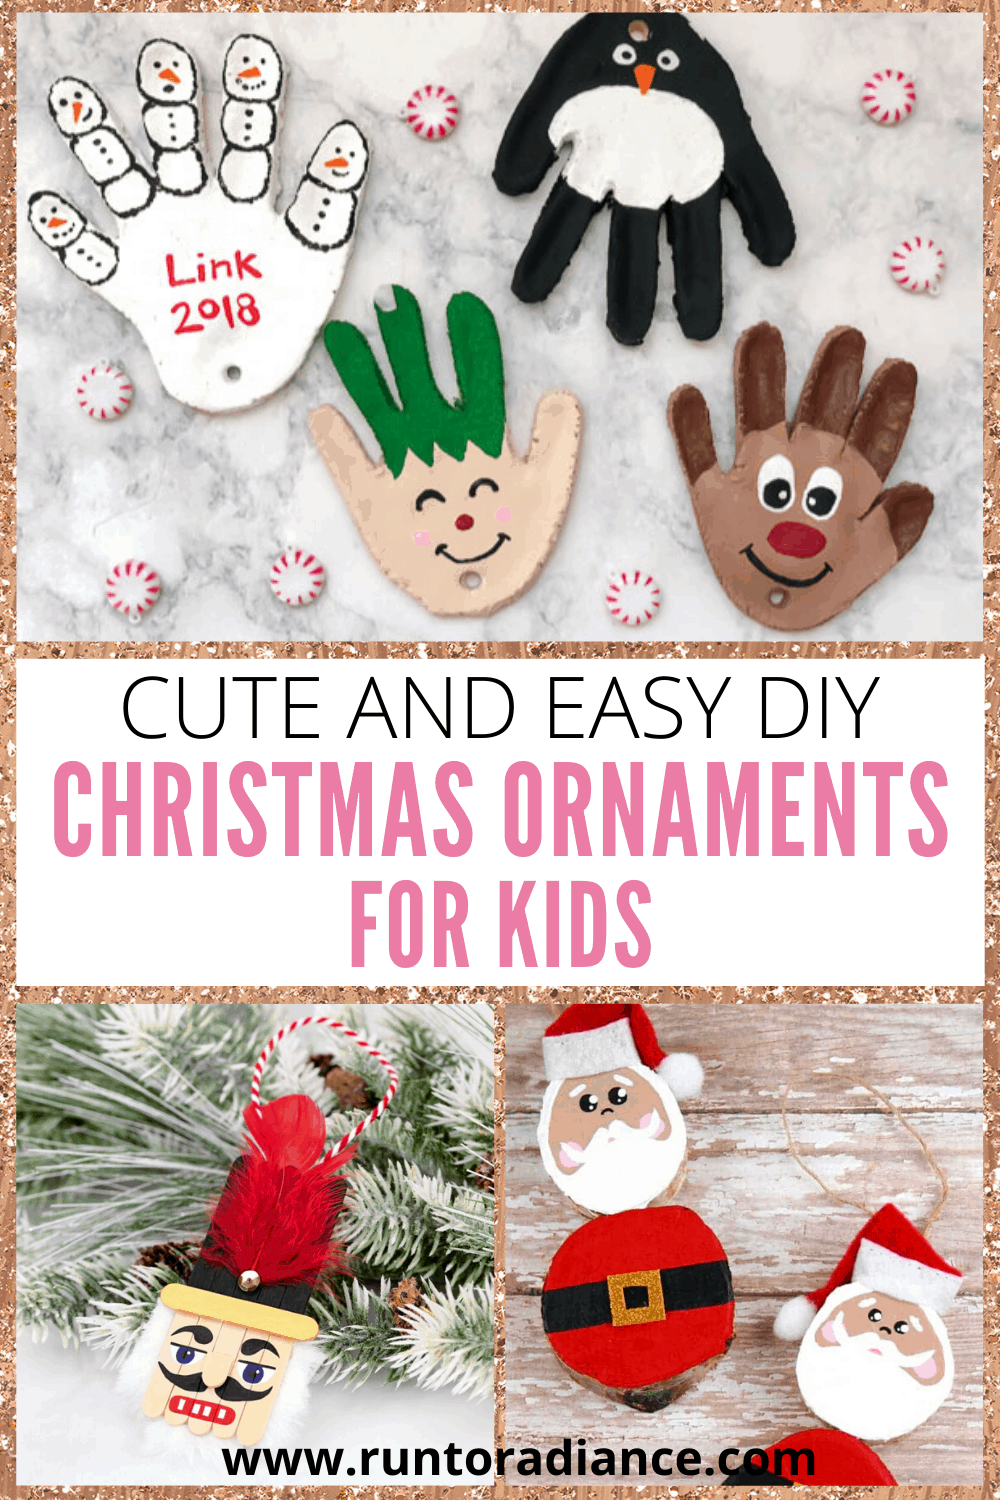 Collection of DIY Christmas ornaments for kids.